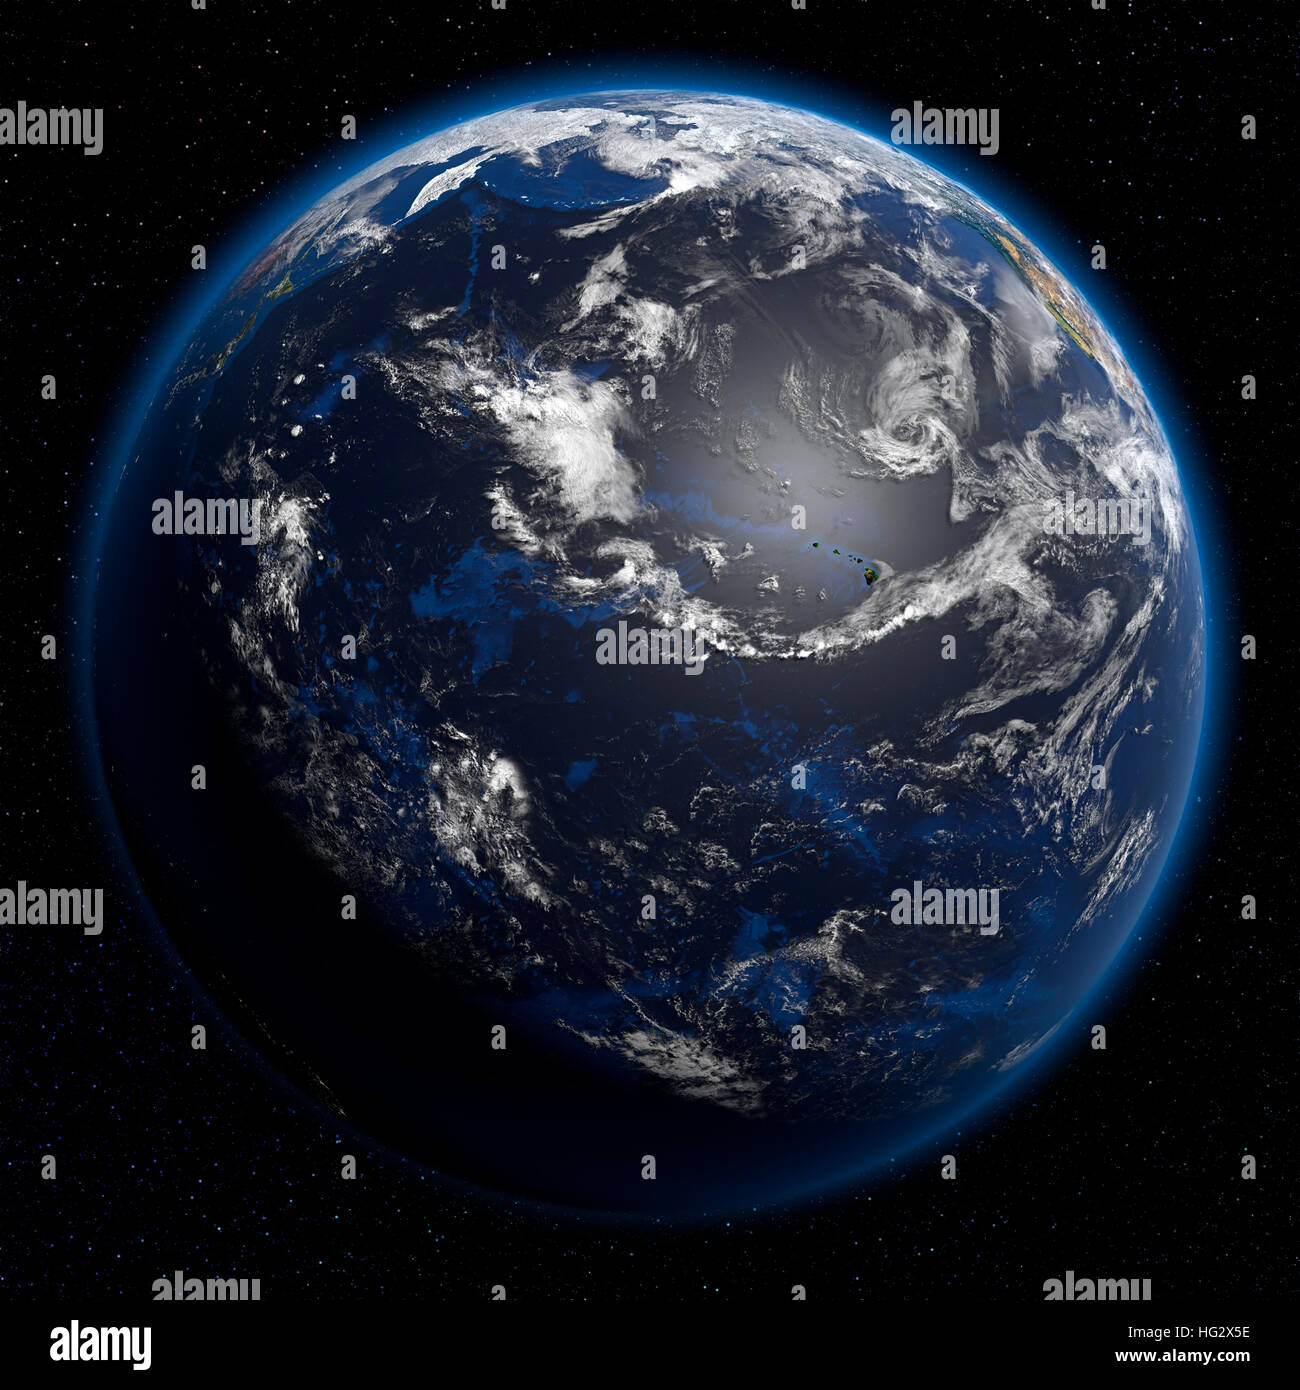 Earth viewed from space showing the Pacific Ocean. Realistic digital illustration including relief map hill shading - Stock Image